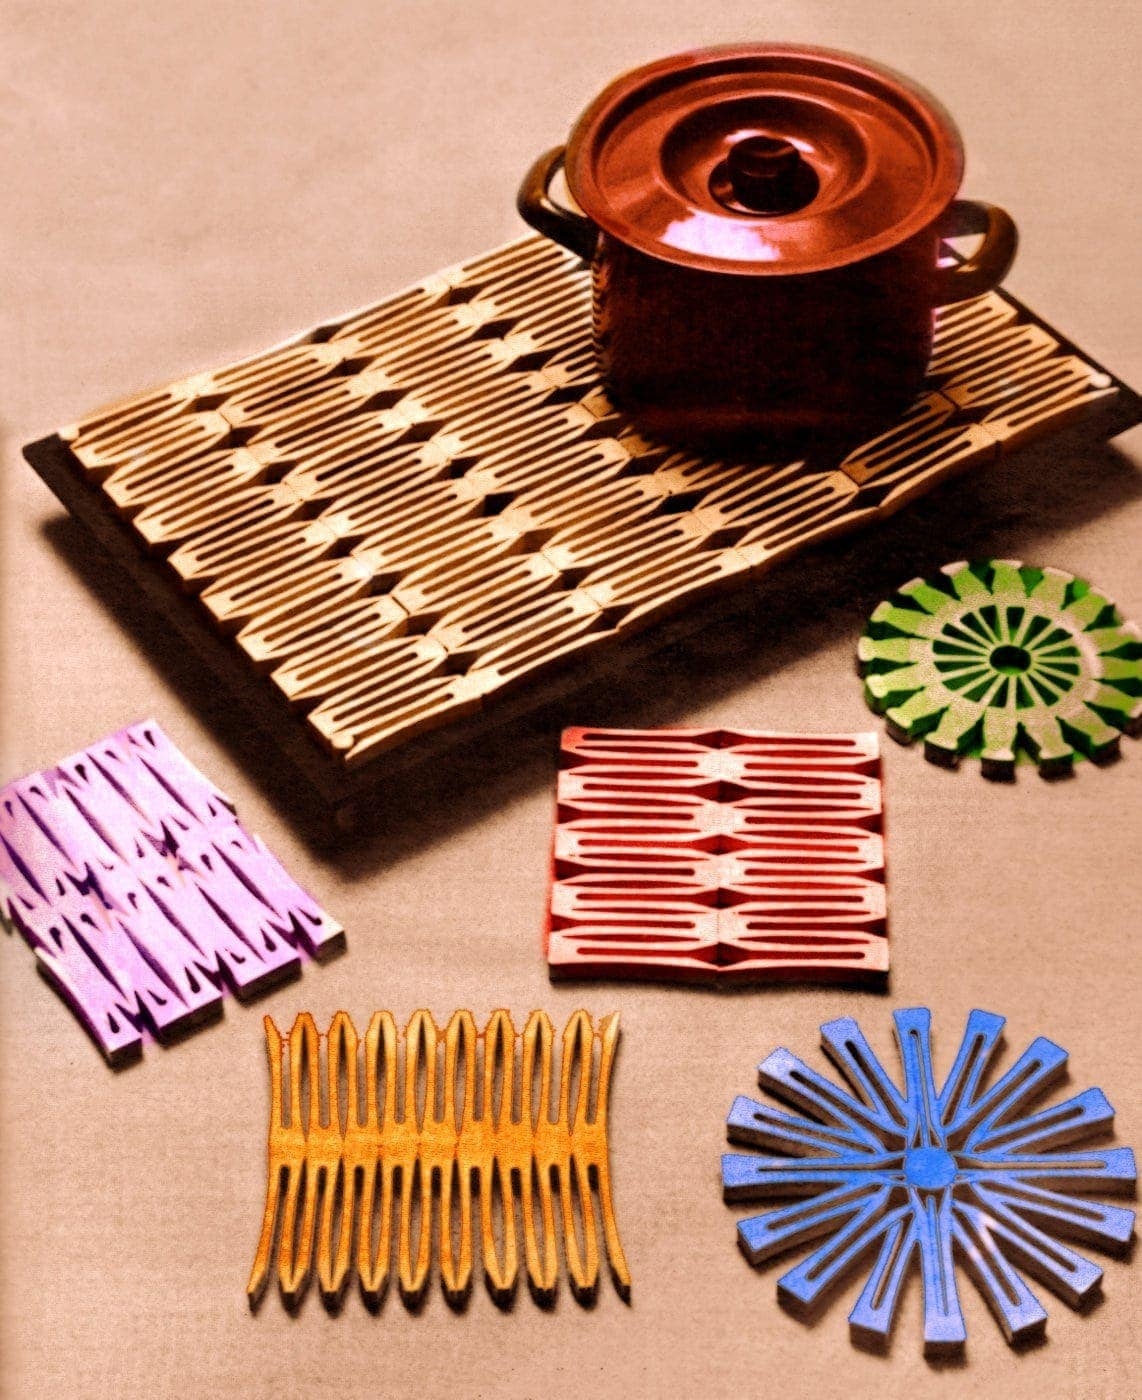 Easy Vintage Crafts How To Make Wooden Clothespin Trivets Coasters Click Americana